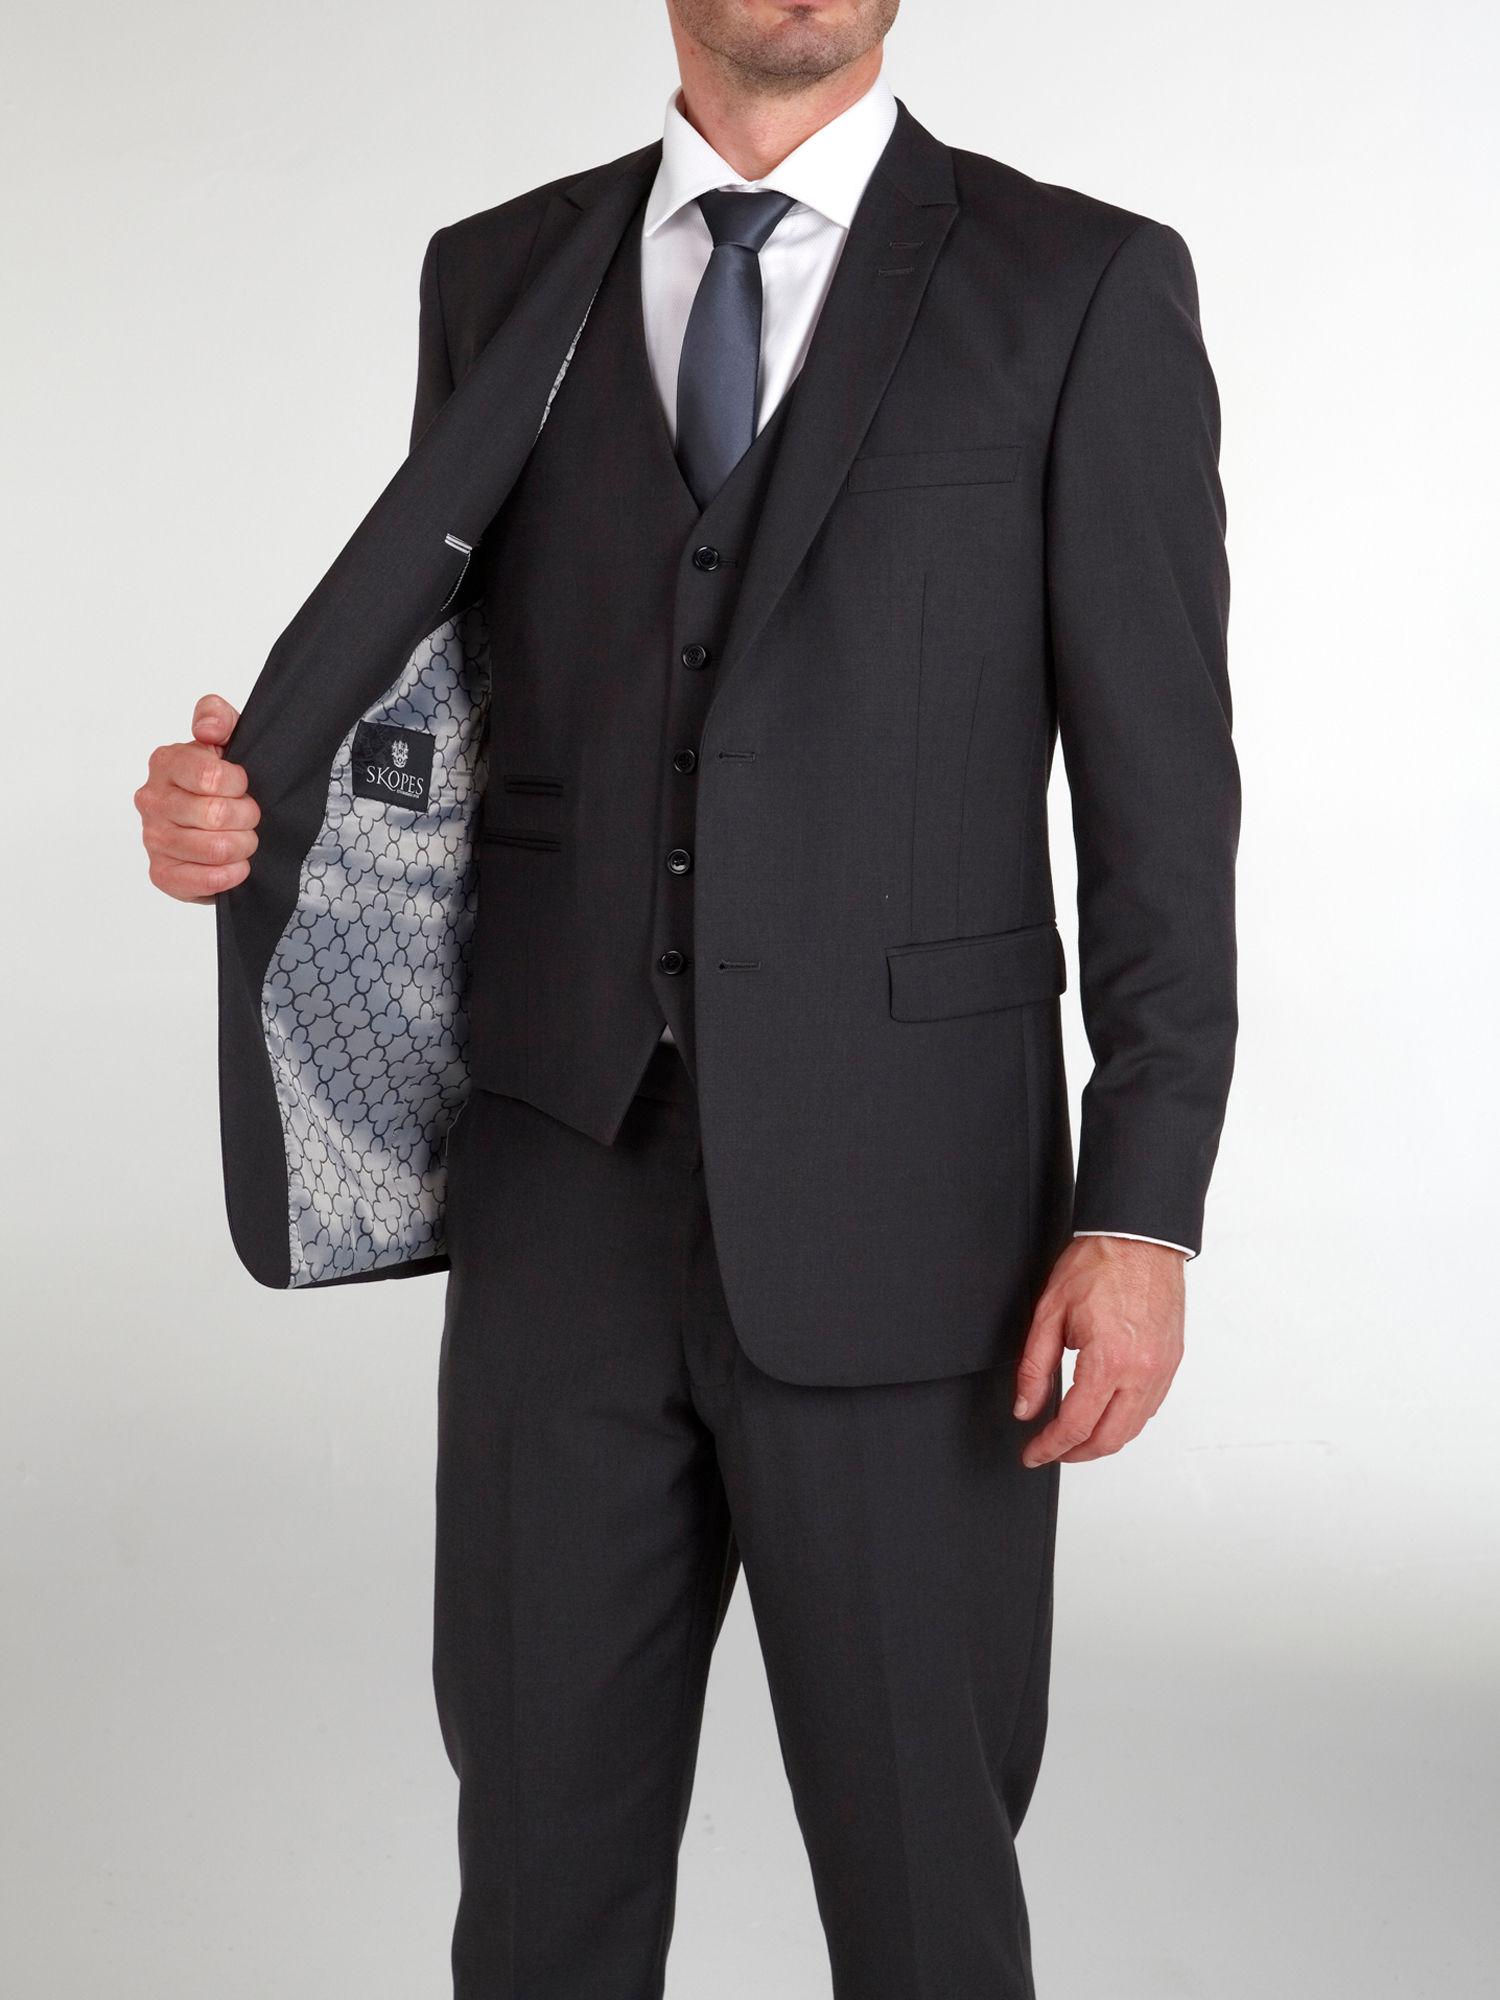 Madrid Charcoal 3 Piece Suit - Tom Murphy's Formal and Menswear